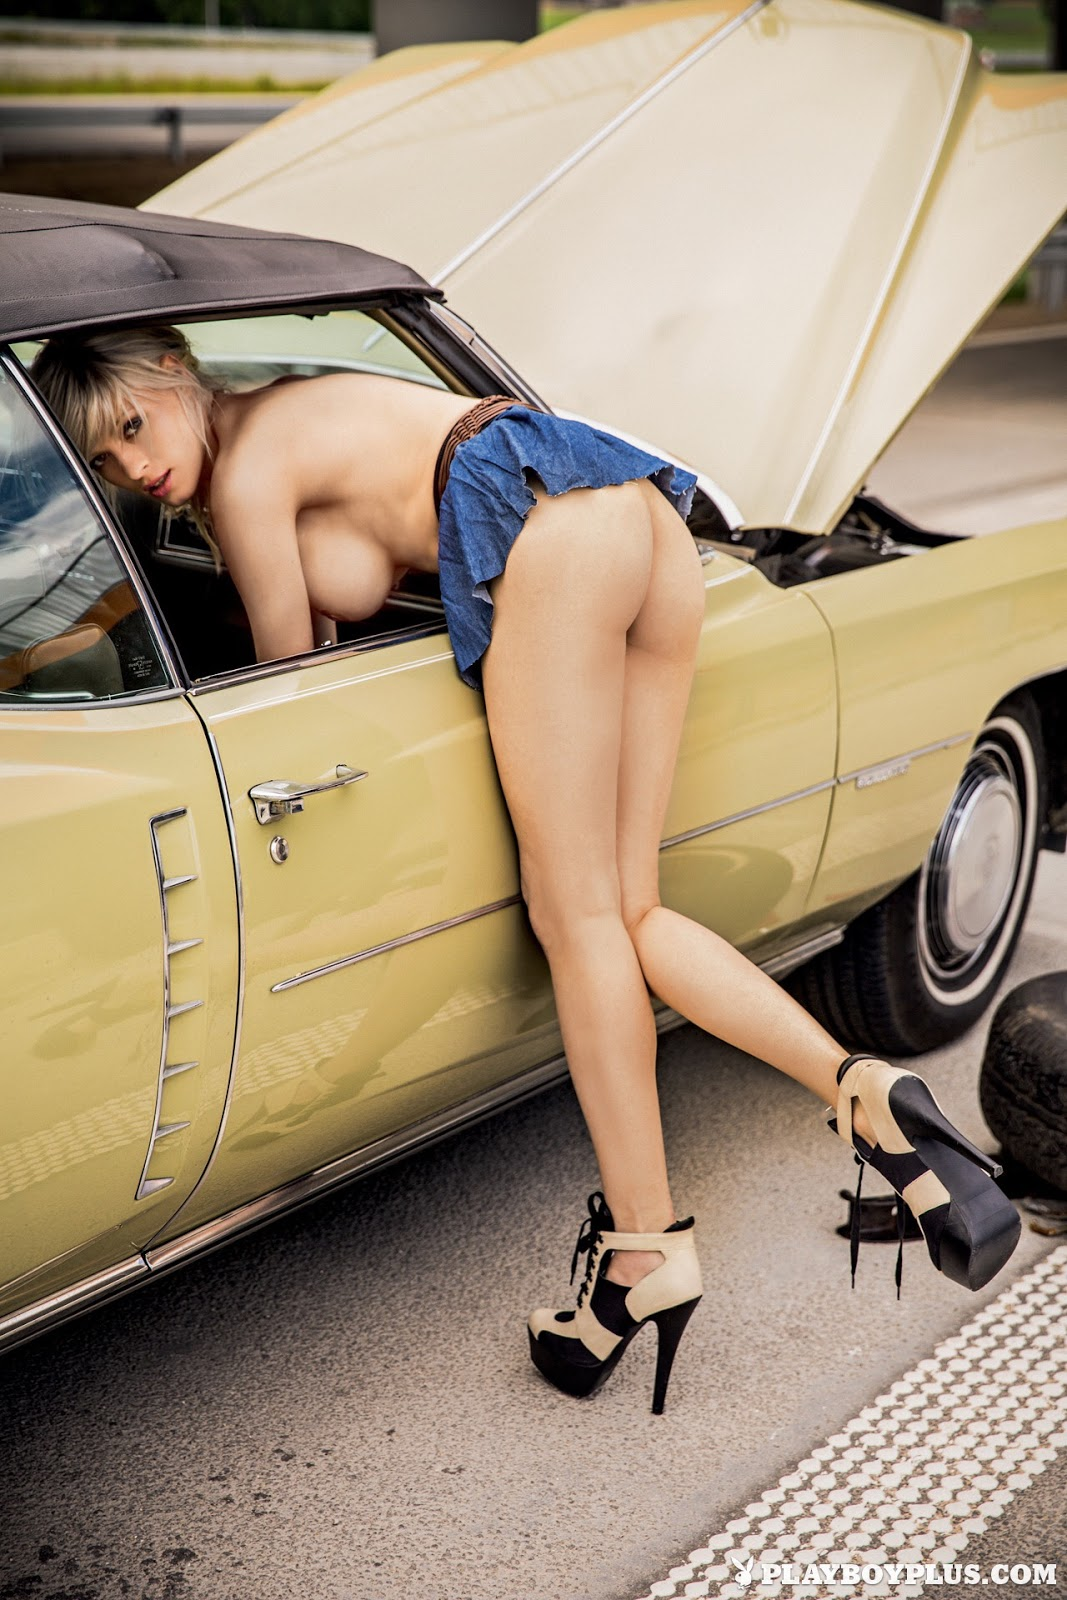 Nudes In Cars 20